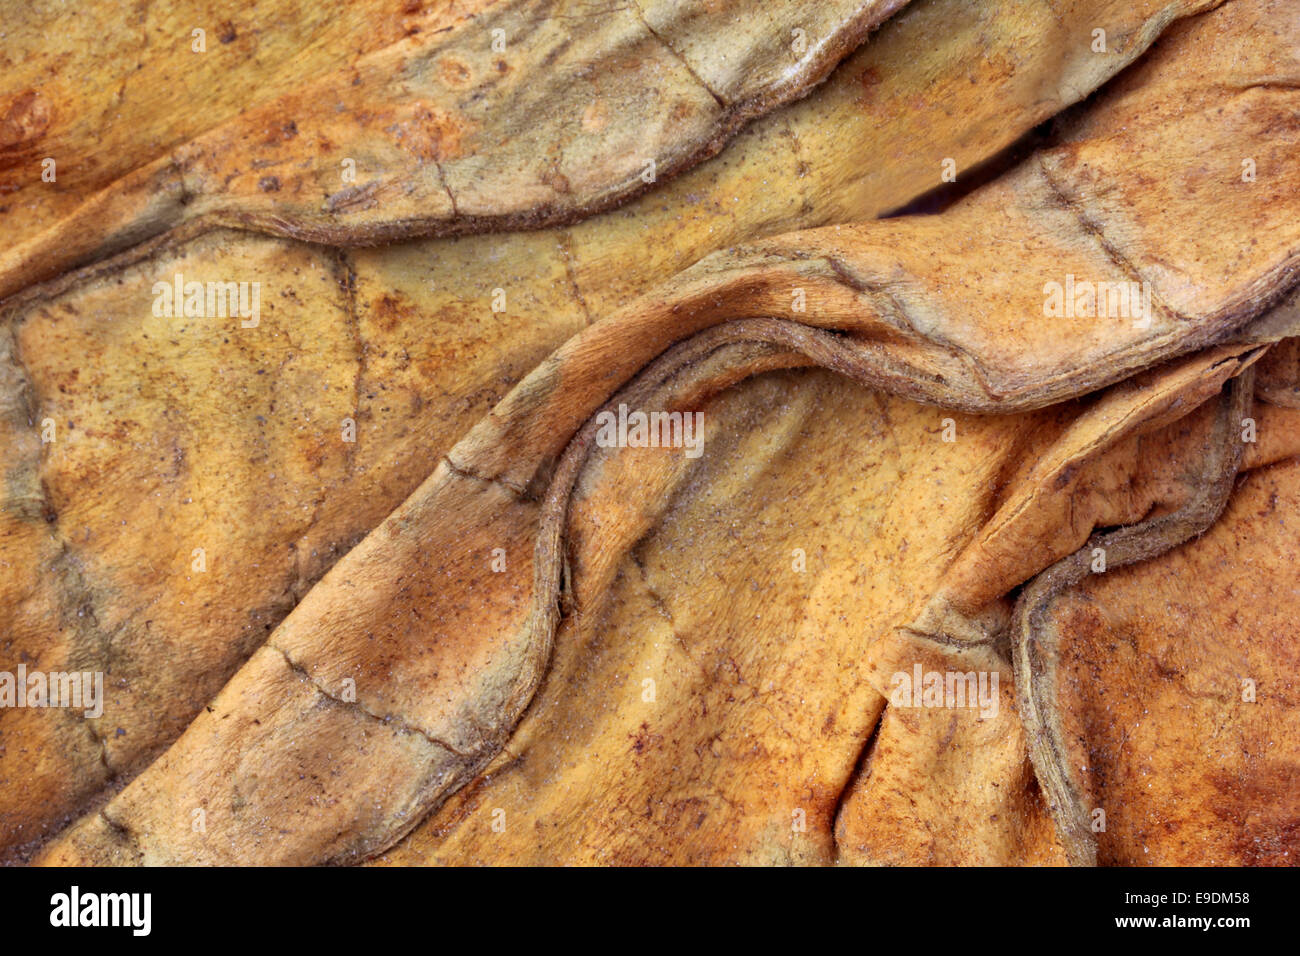 Background of dried tobacco leaves - Stock Image